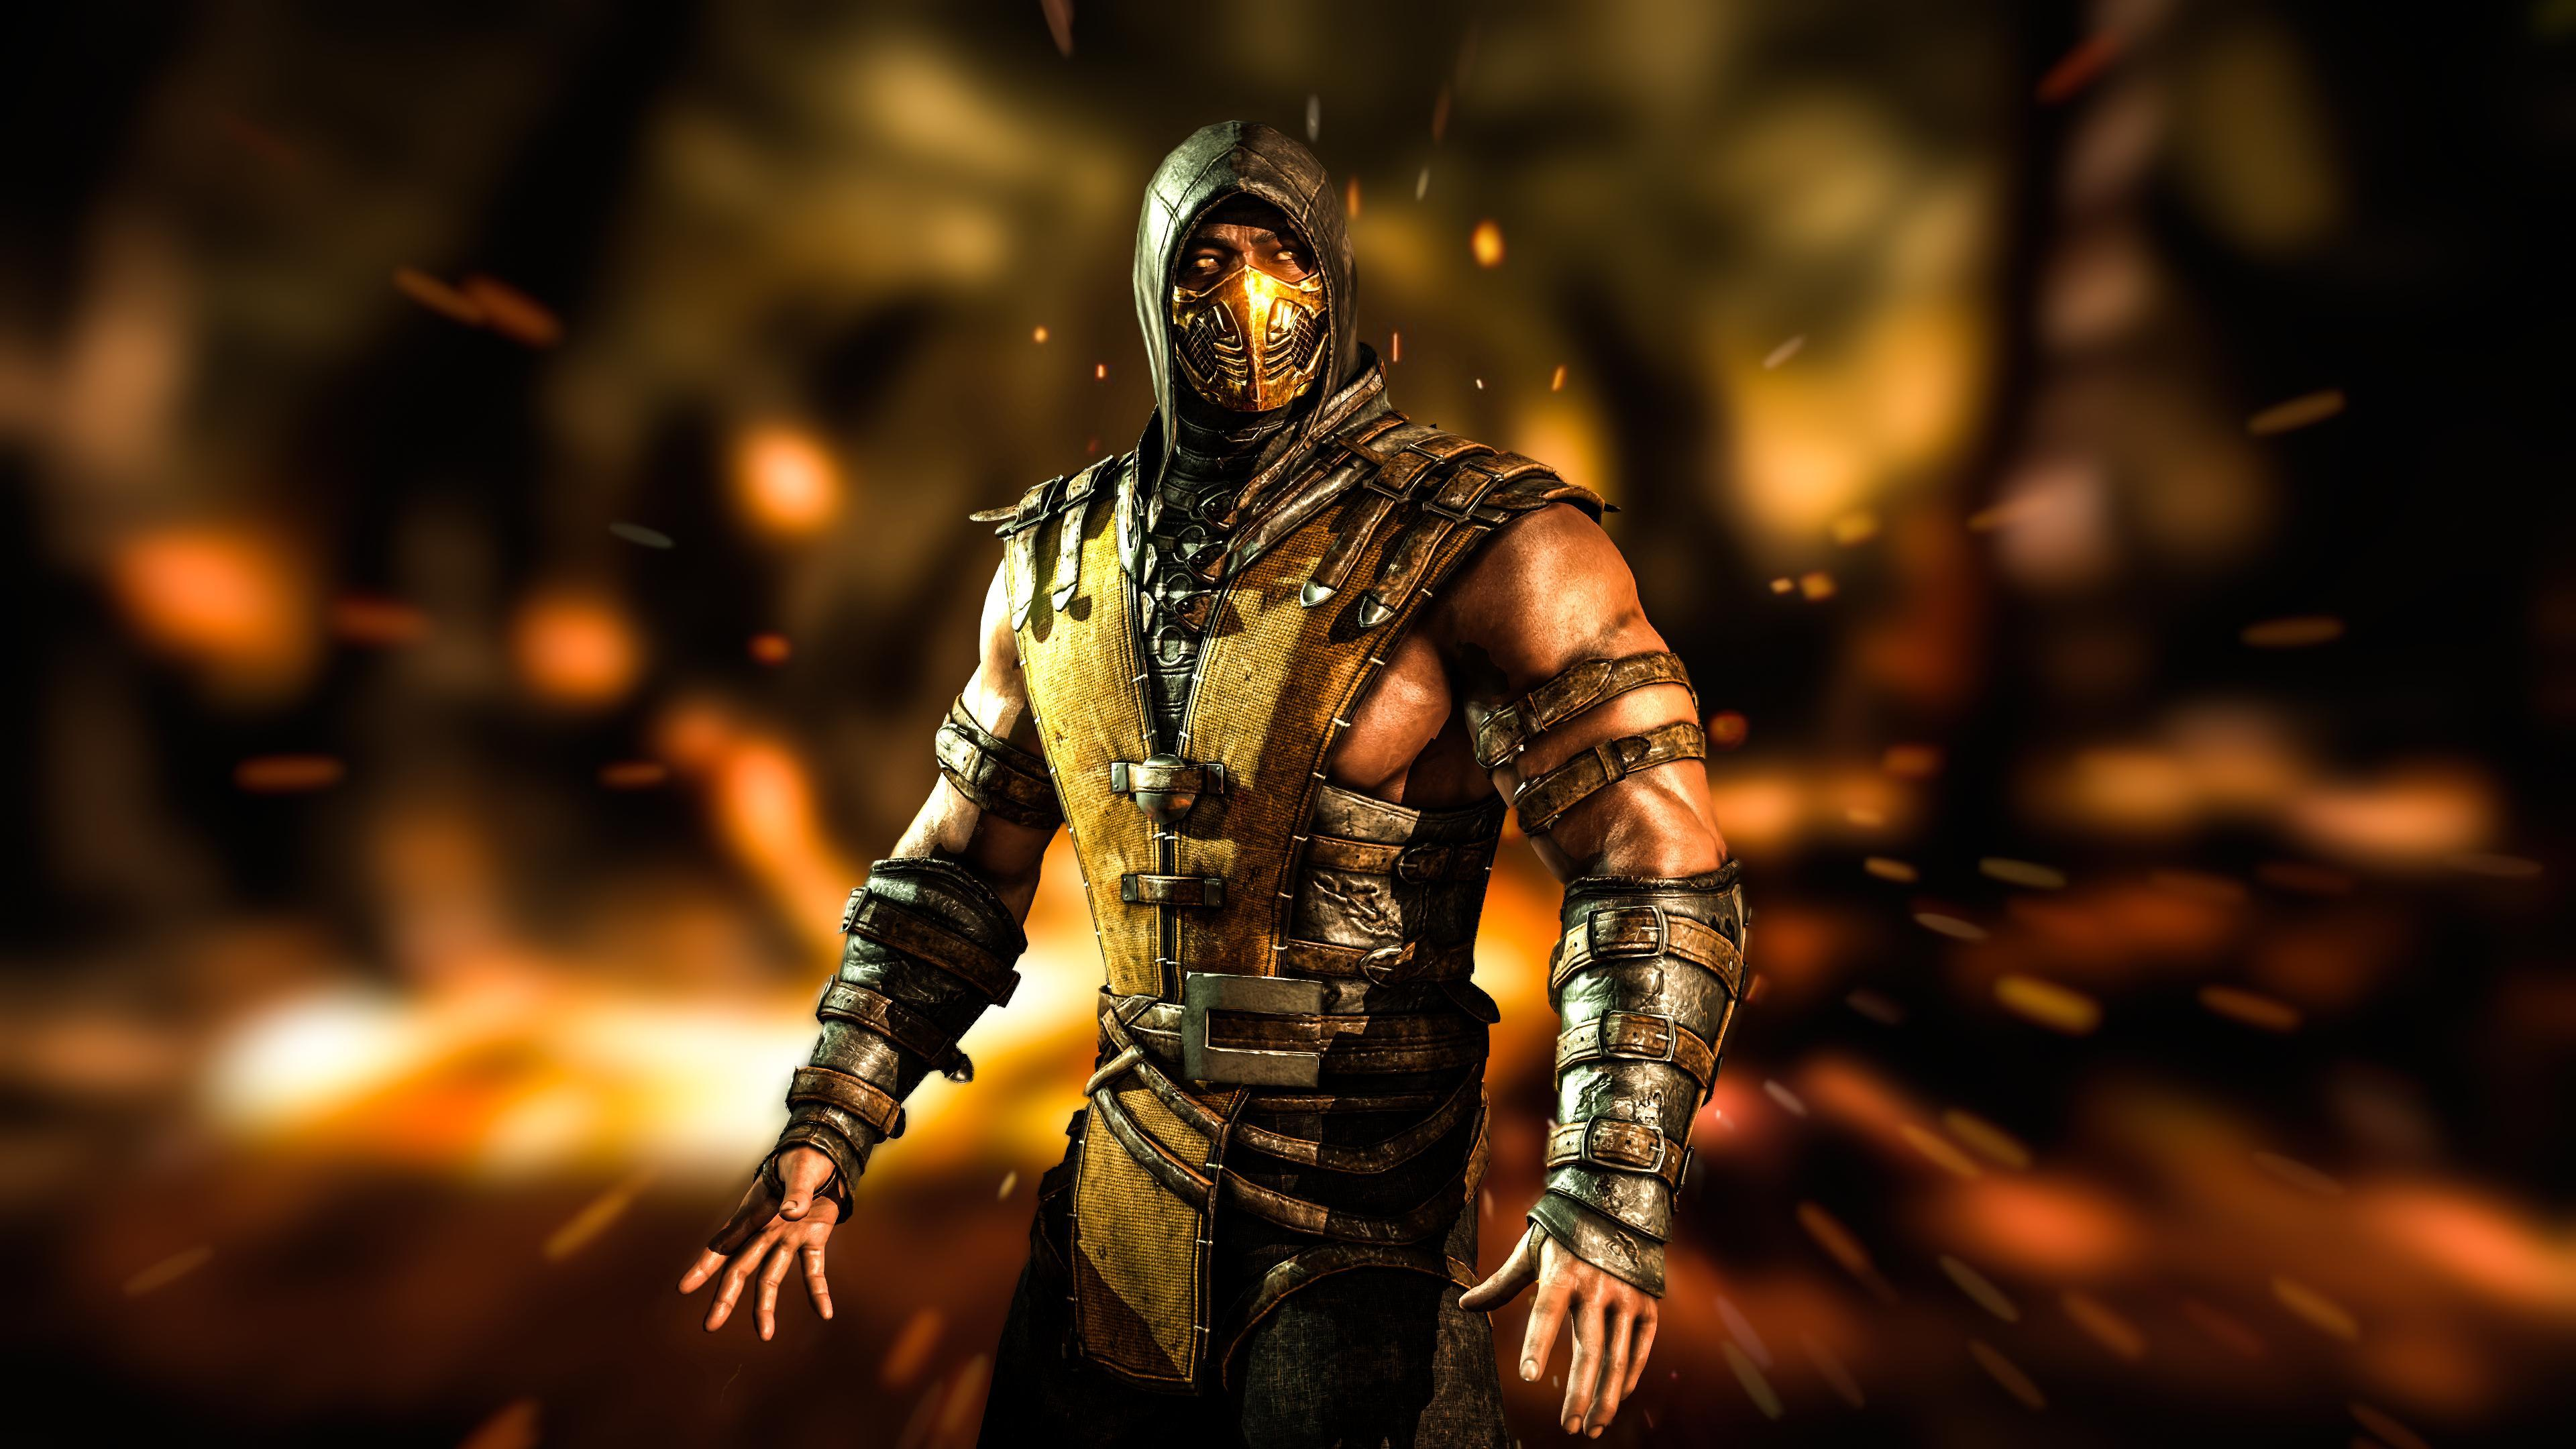 Mortal Kombat 4k Ultra Hd Wallpaper And Background Image: Mortal Kombat X 4k